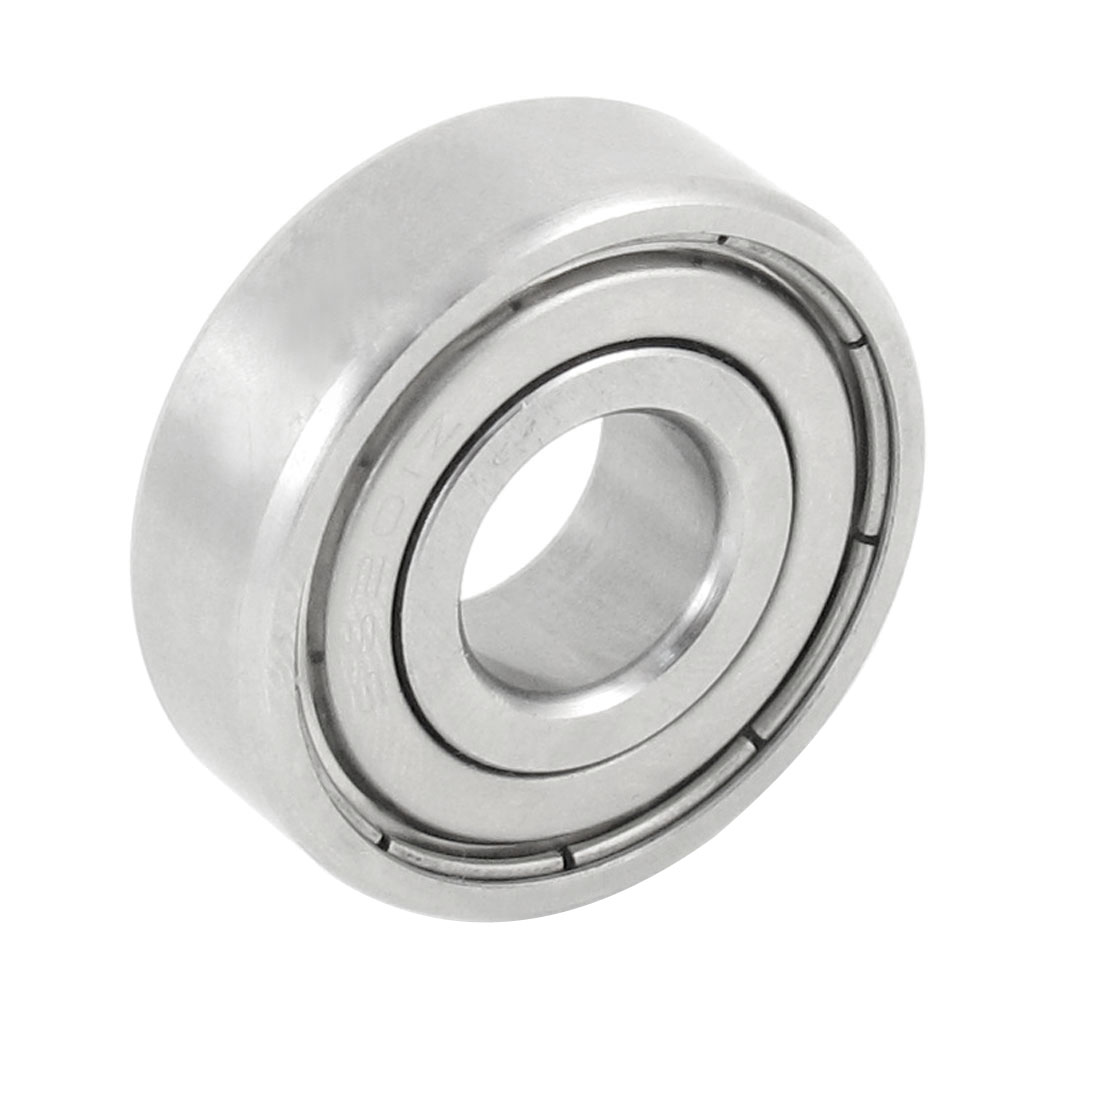 Stainless Steel 31mm x 12mm x 10mm Sealed Deep Groove Ball Bearing